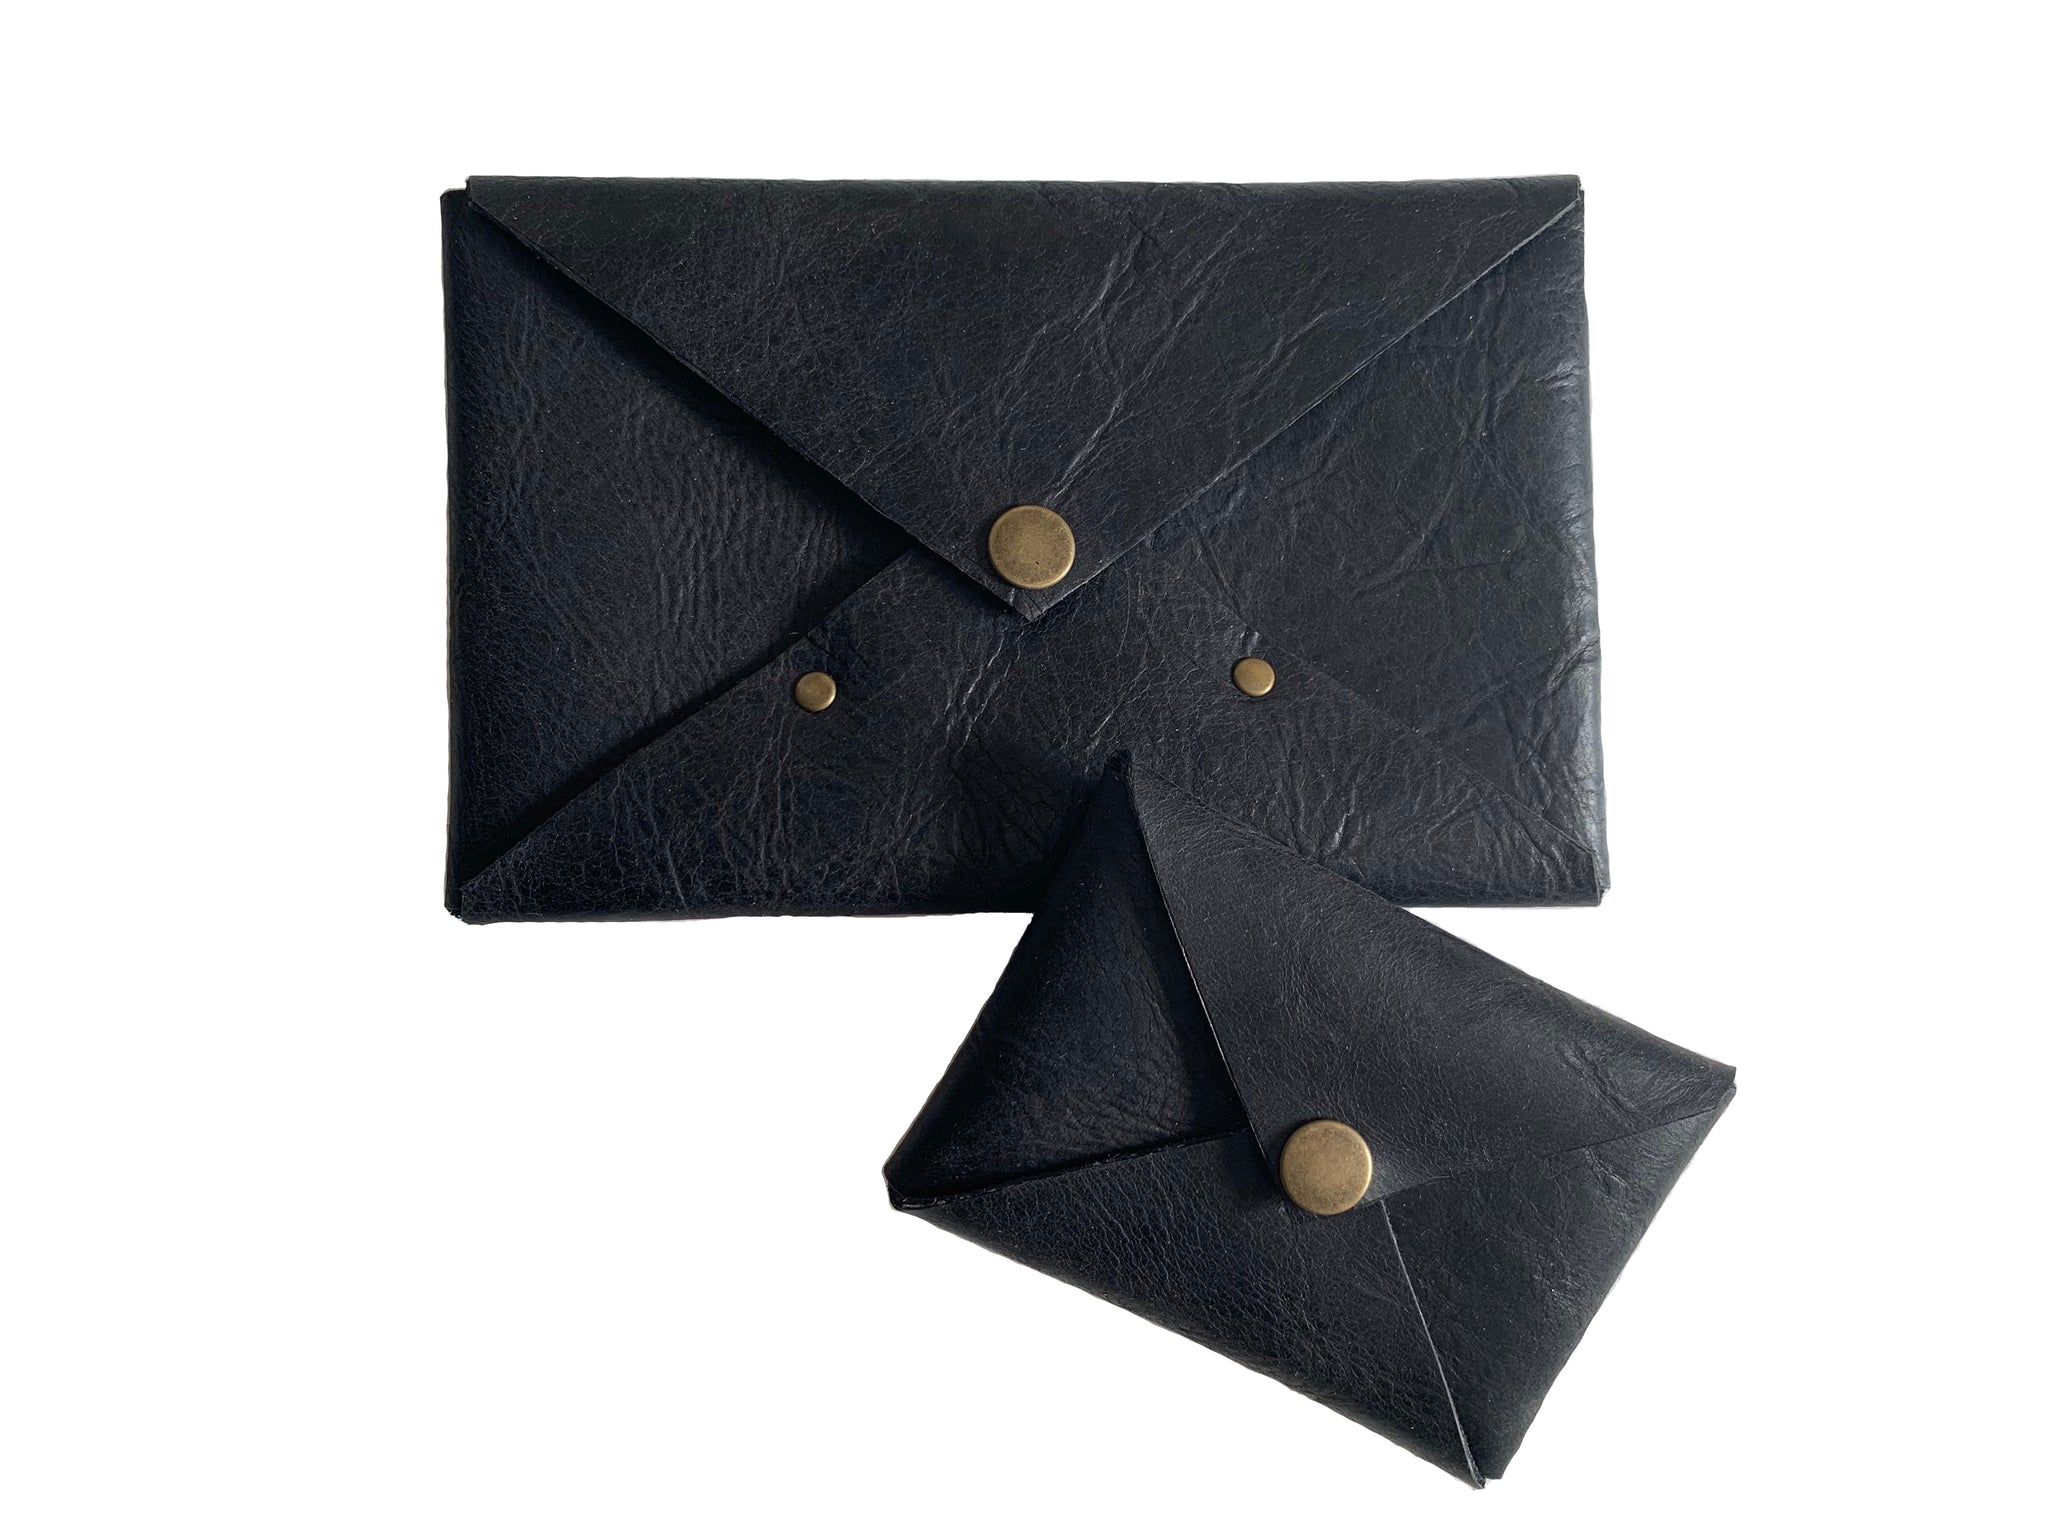 Leather Gift Ideas | Envelope Gift Set in Black